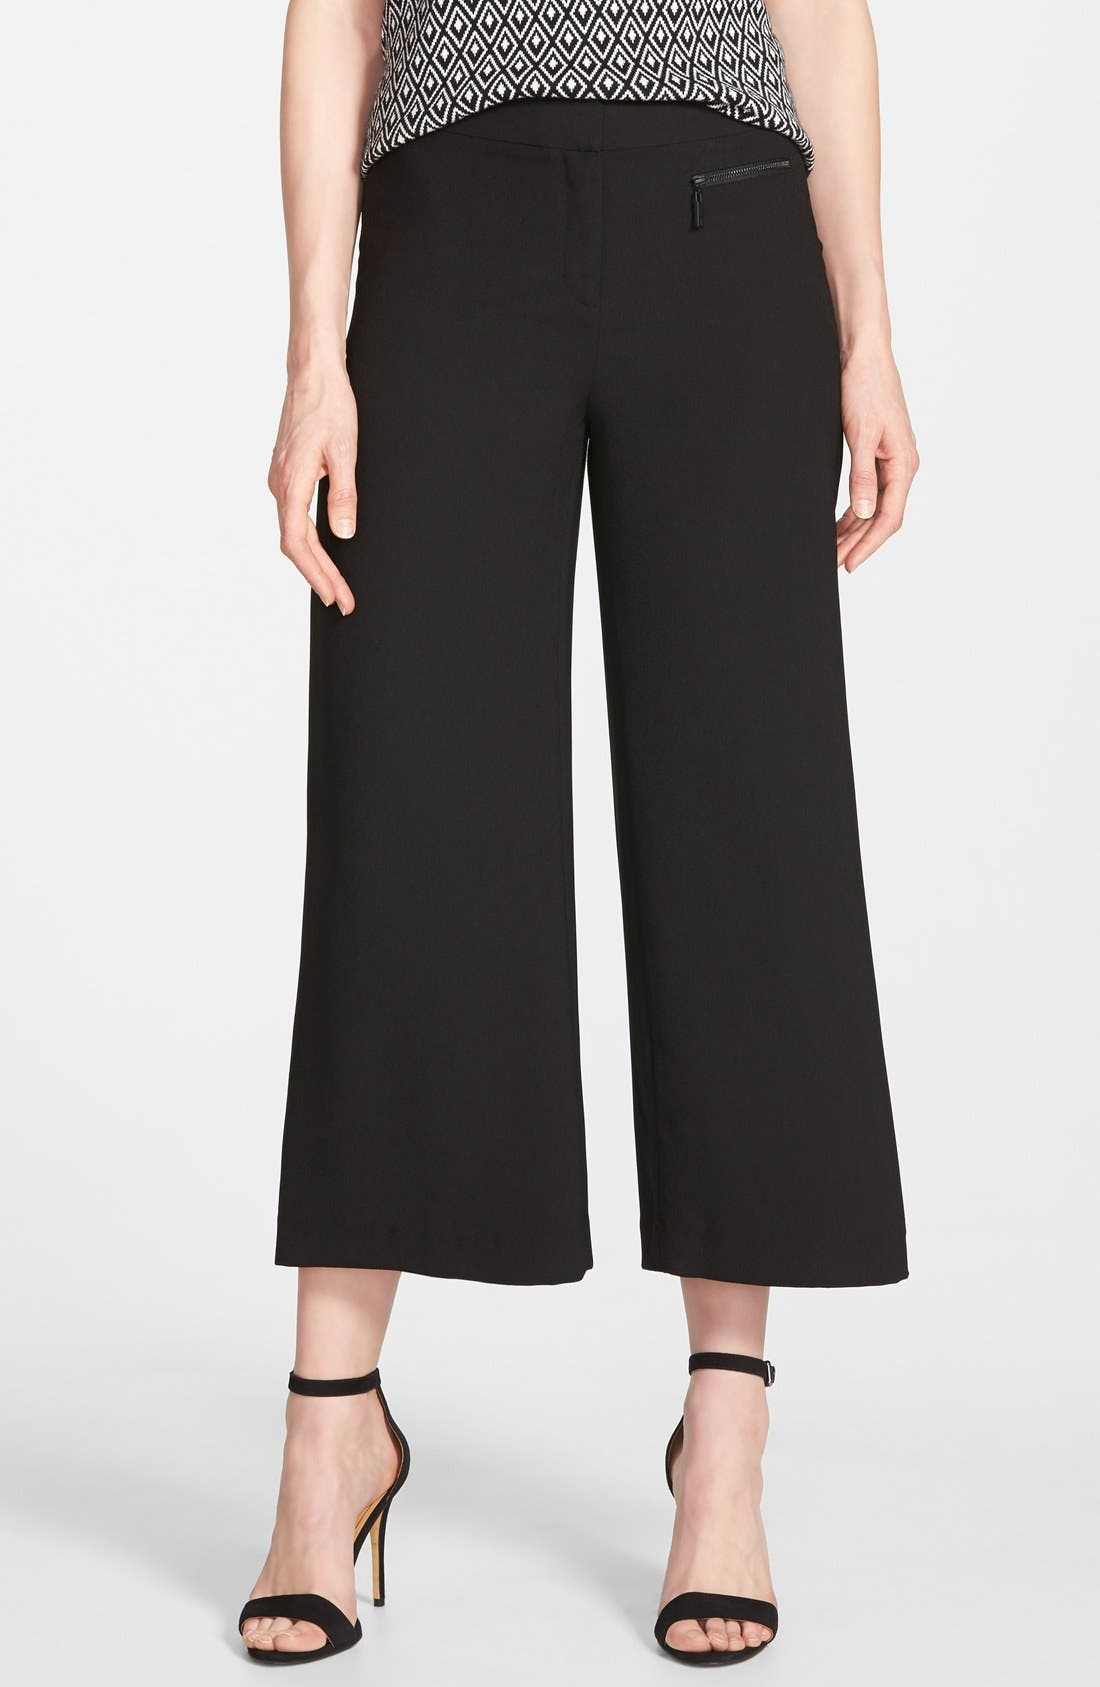 Alternate Image 1 Selected - Vince Camuto Zip Pocket Culottes (Nordstrom Exclusive)